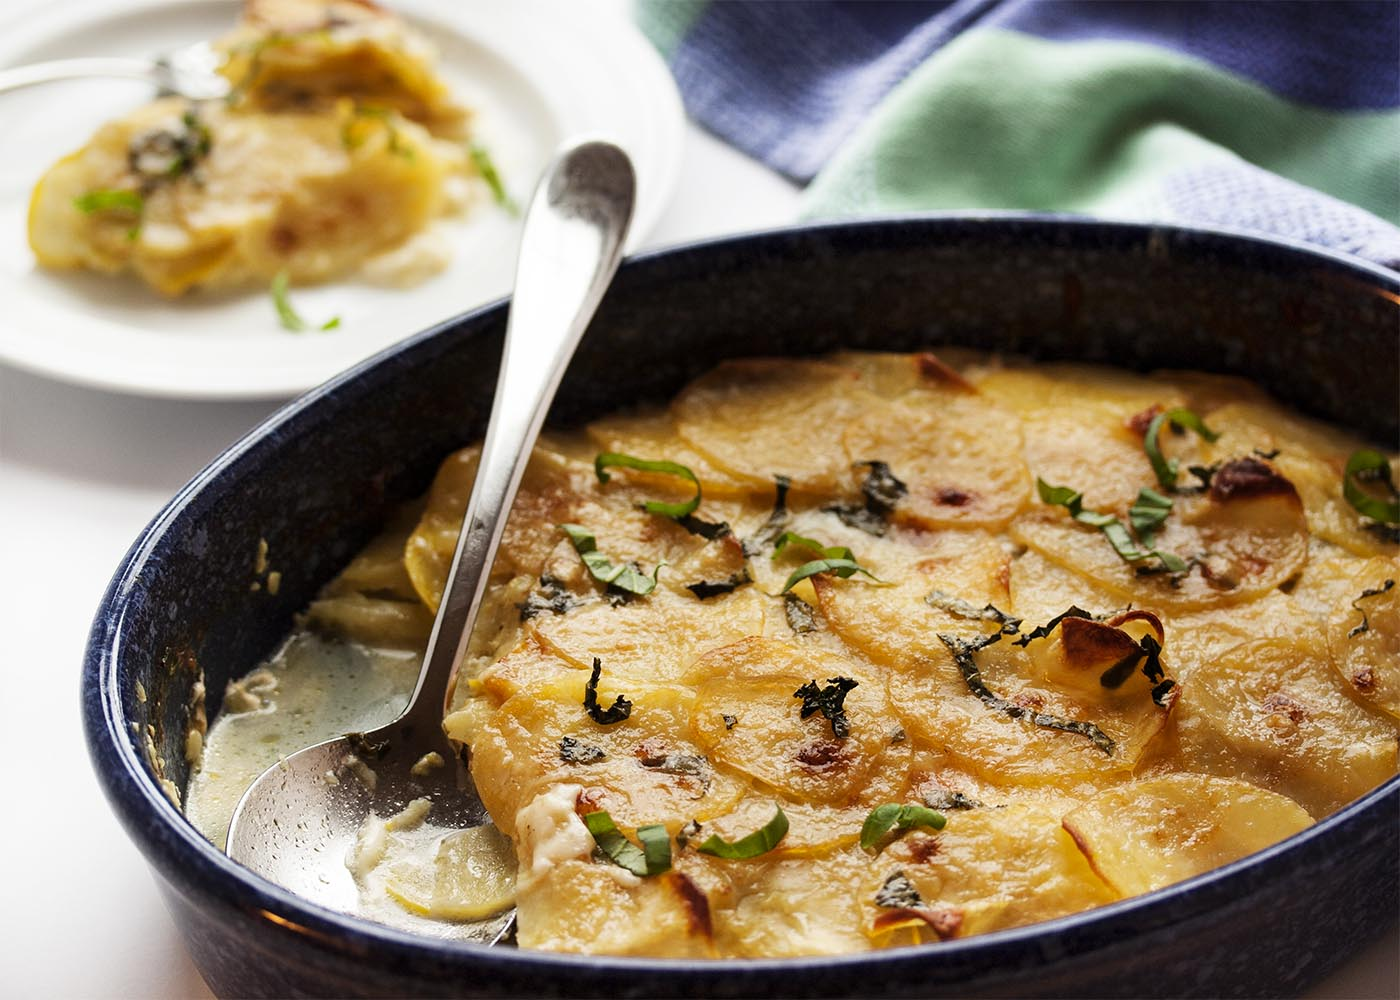 Sunny Yellow Squash and Potato Gratin - Yellow squash and yellow potatoes combine in this gratin to make one of my favorite easy side dishes.   justalittlebitofbacon.com